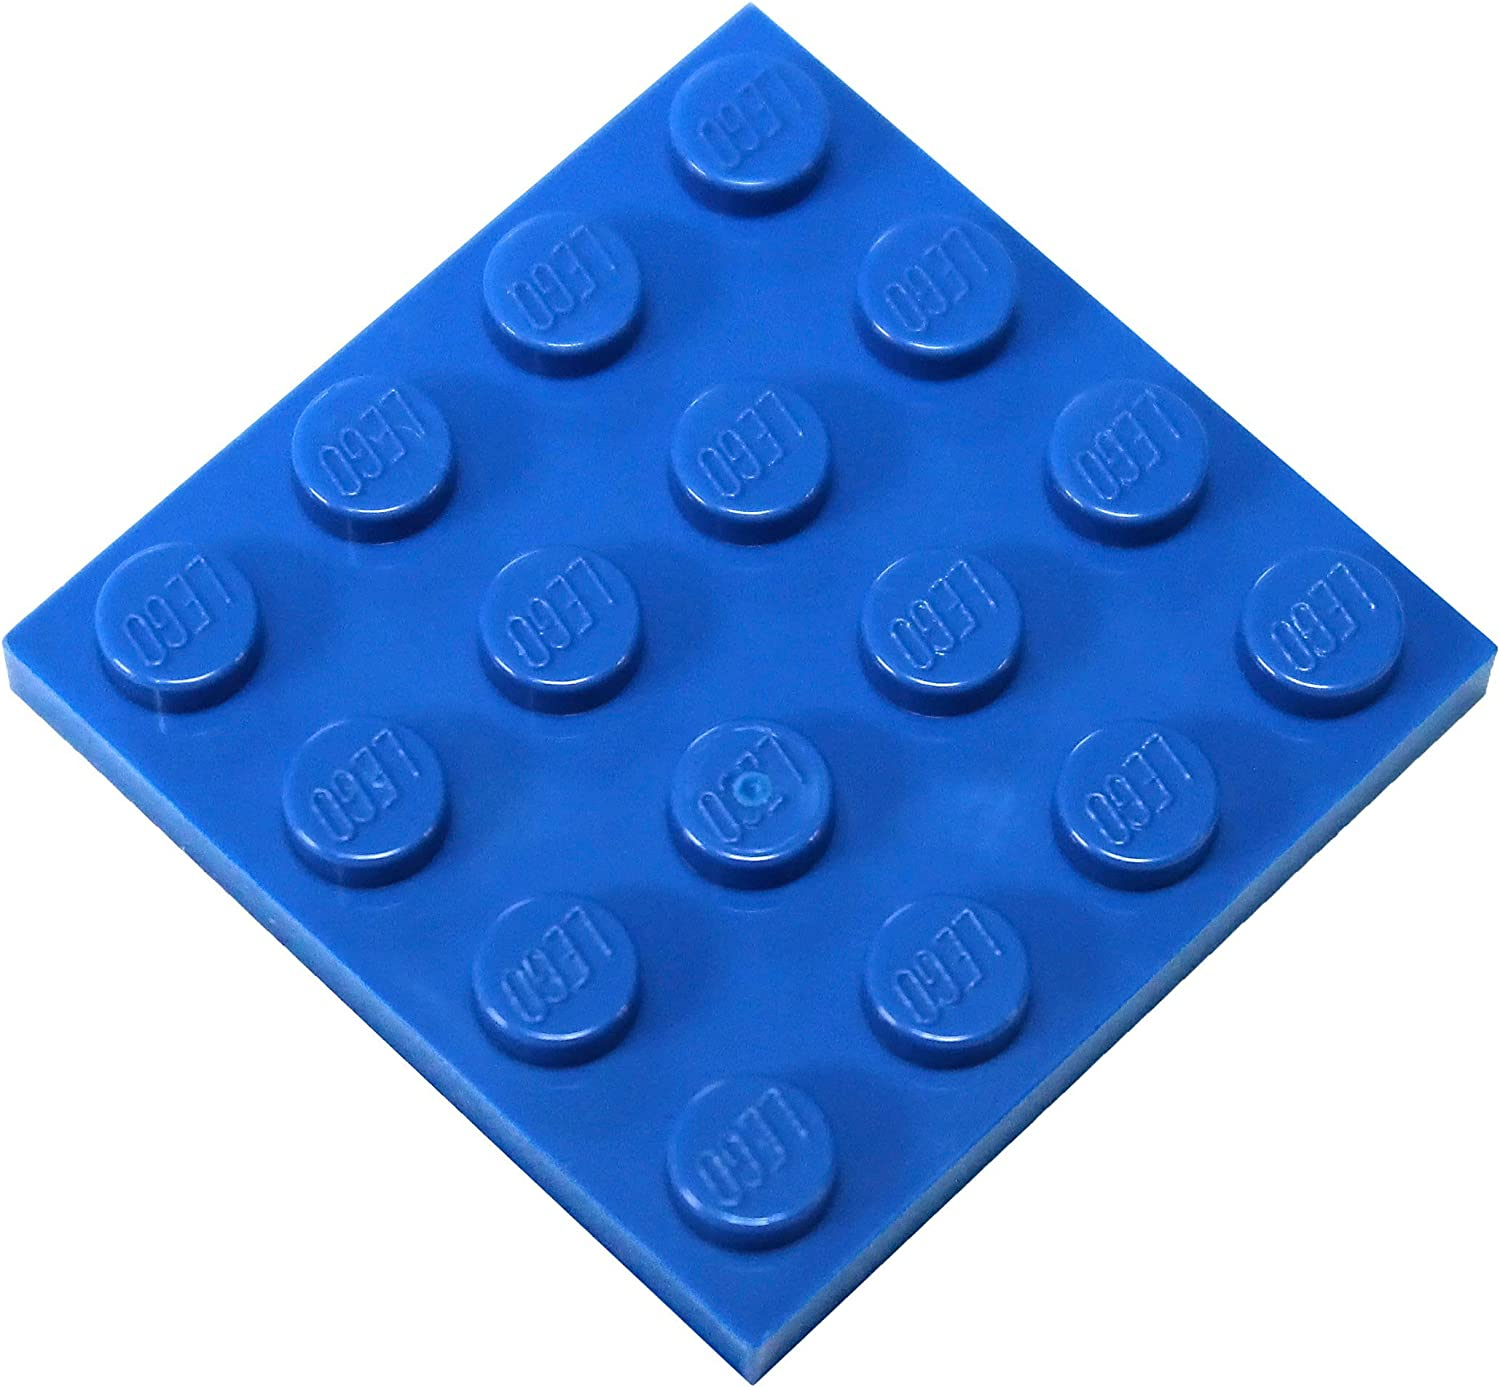 LEGO Parts and Pieces: Blue (Bright Blue) 4x4 Plate x20